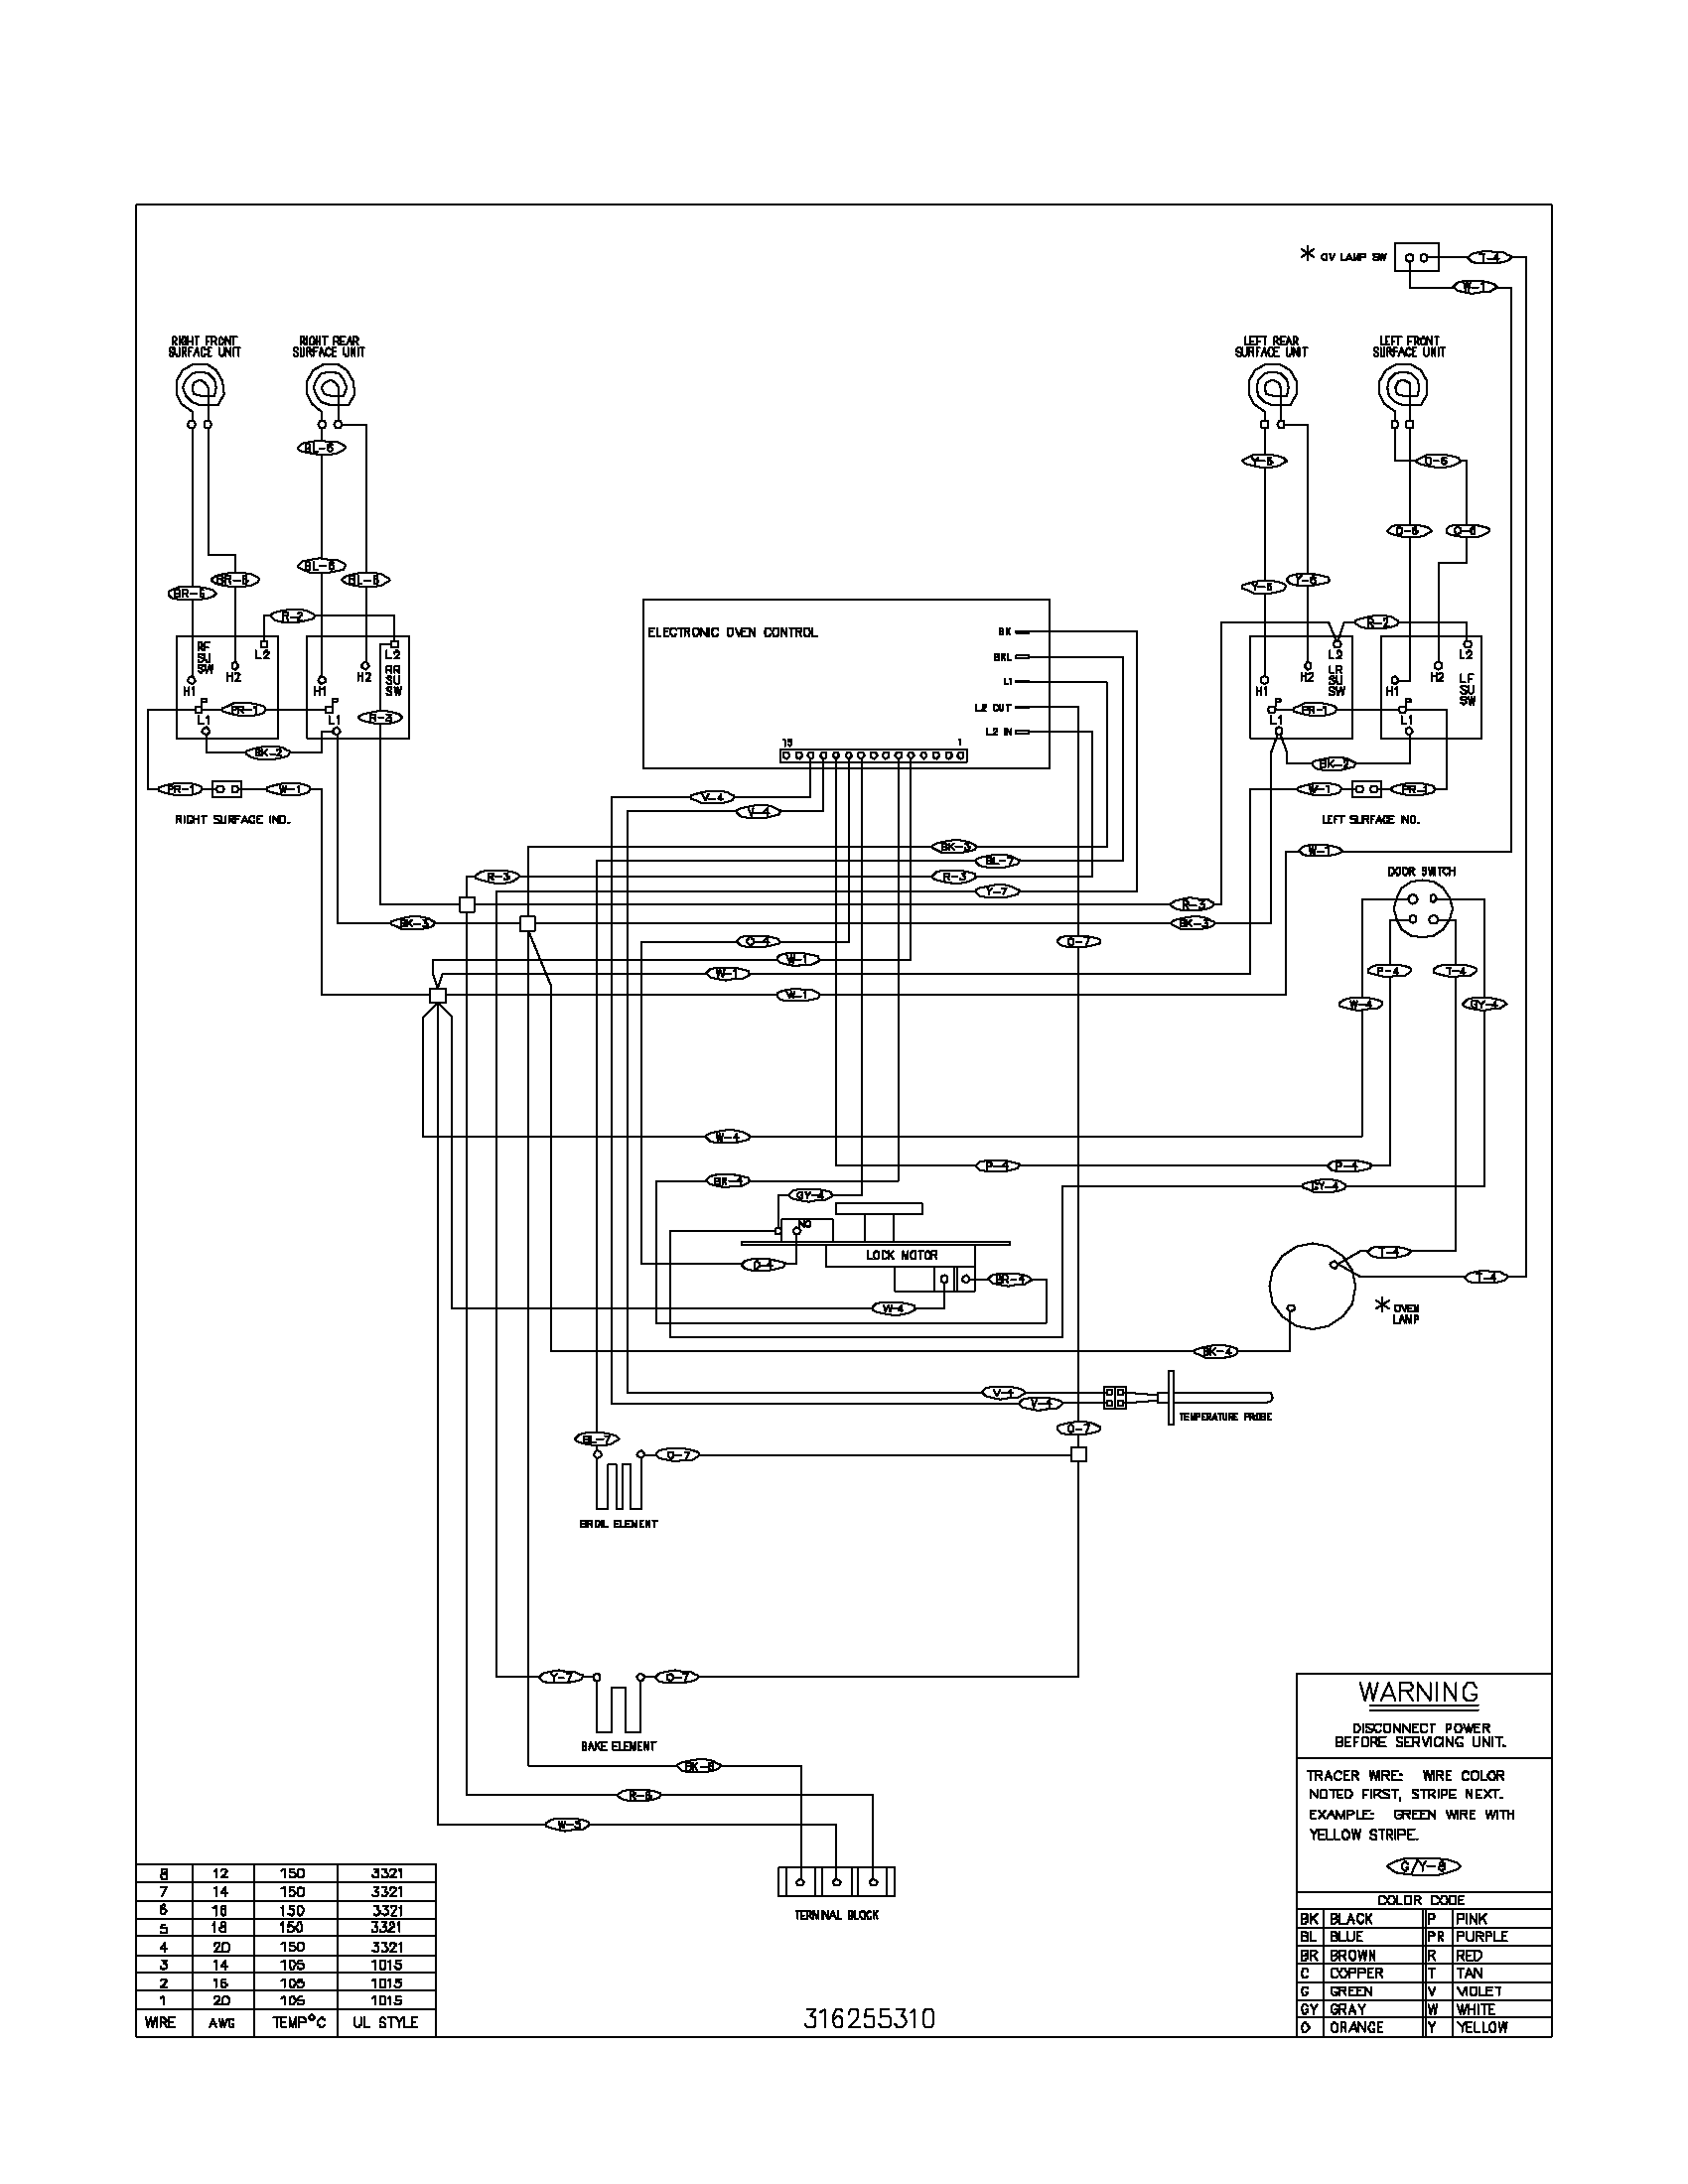 wiring diagram parts frigidaire stove wiring diagram frigidaire washer wiring diagram 6 heat stove switch wiring diagram at soozxer.org